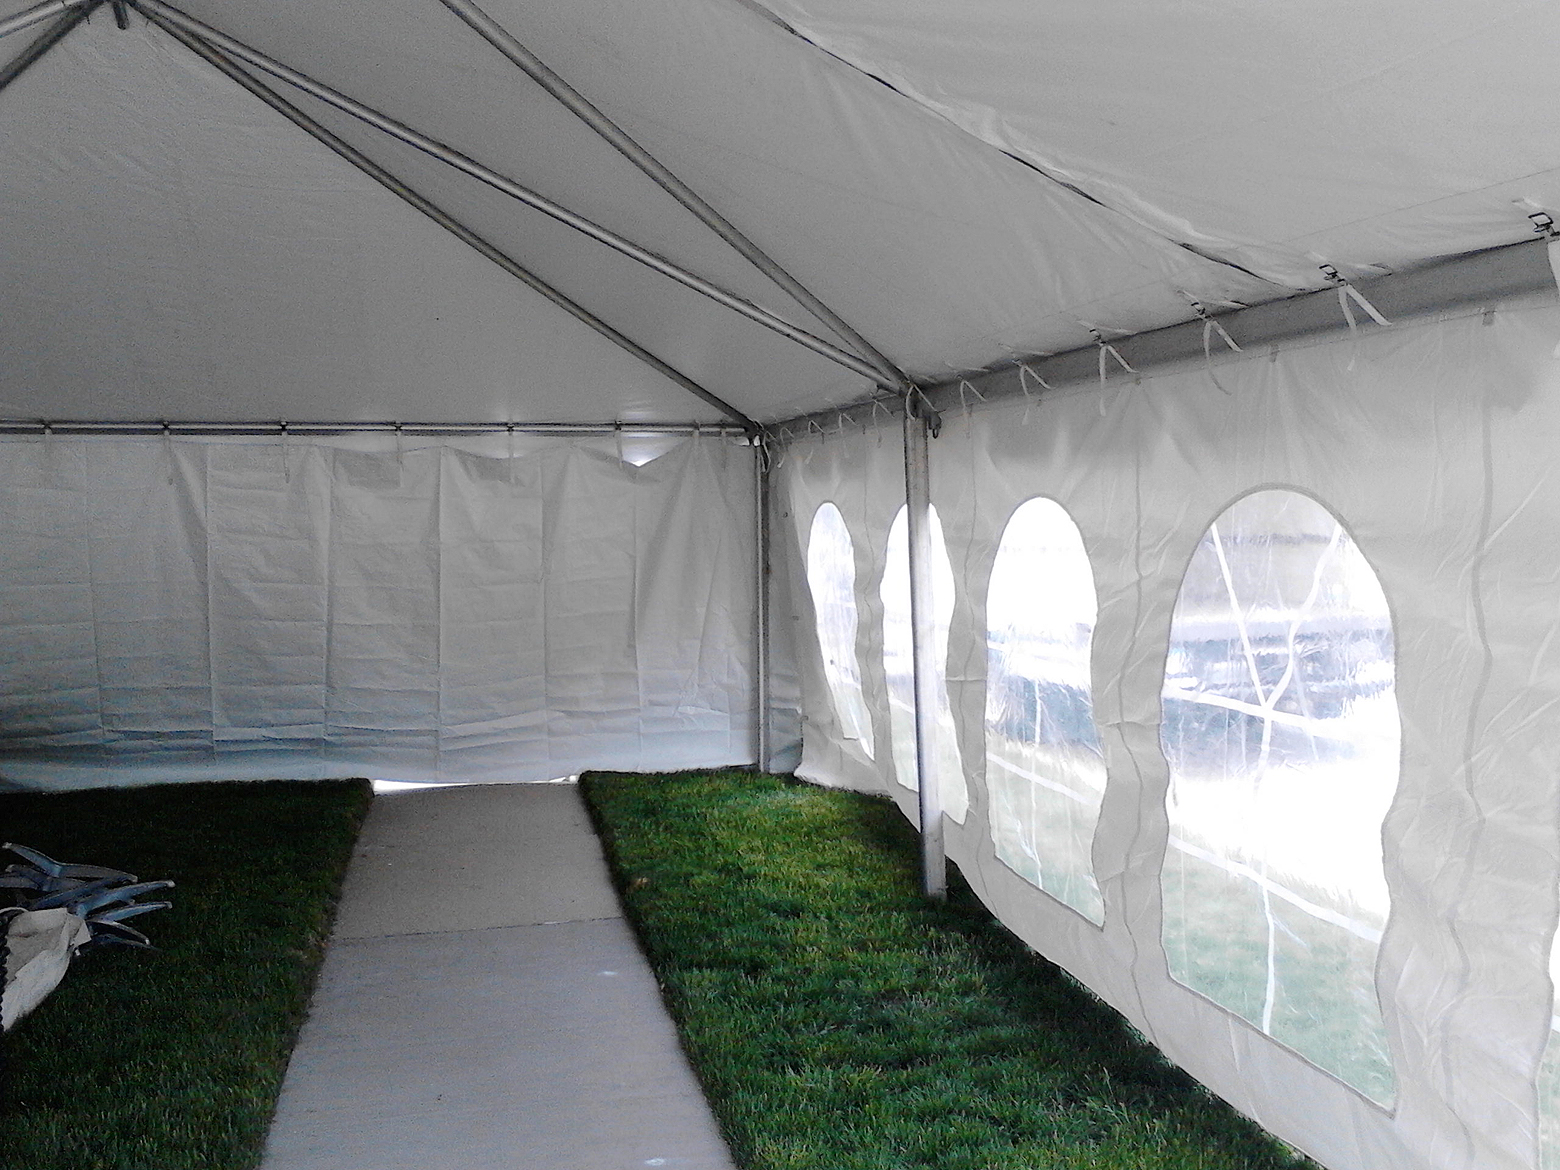 20u2032 x 40u2032 frame tent with french windows and solid sidewalls & 20u0027 x 40u0027 Frame Event Tent Rental in Iowa | Temporary Structure